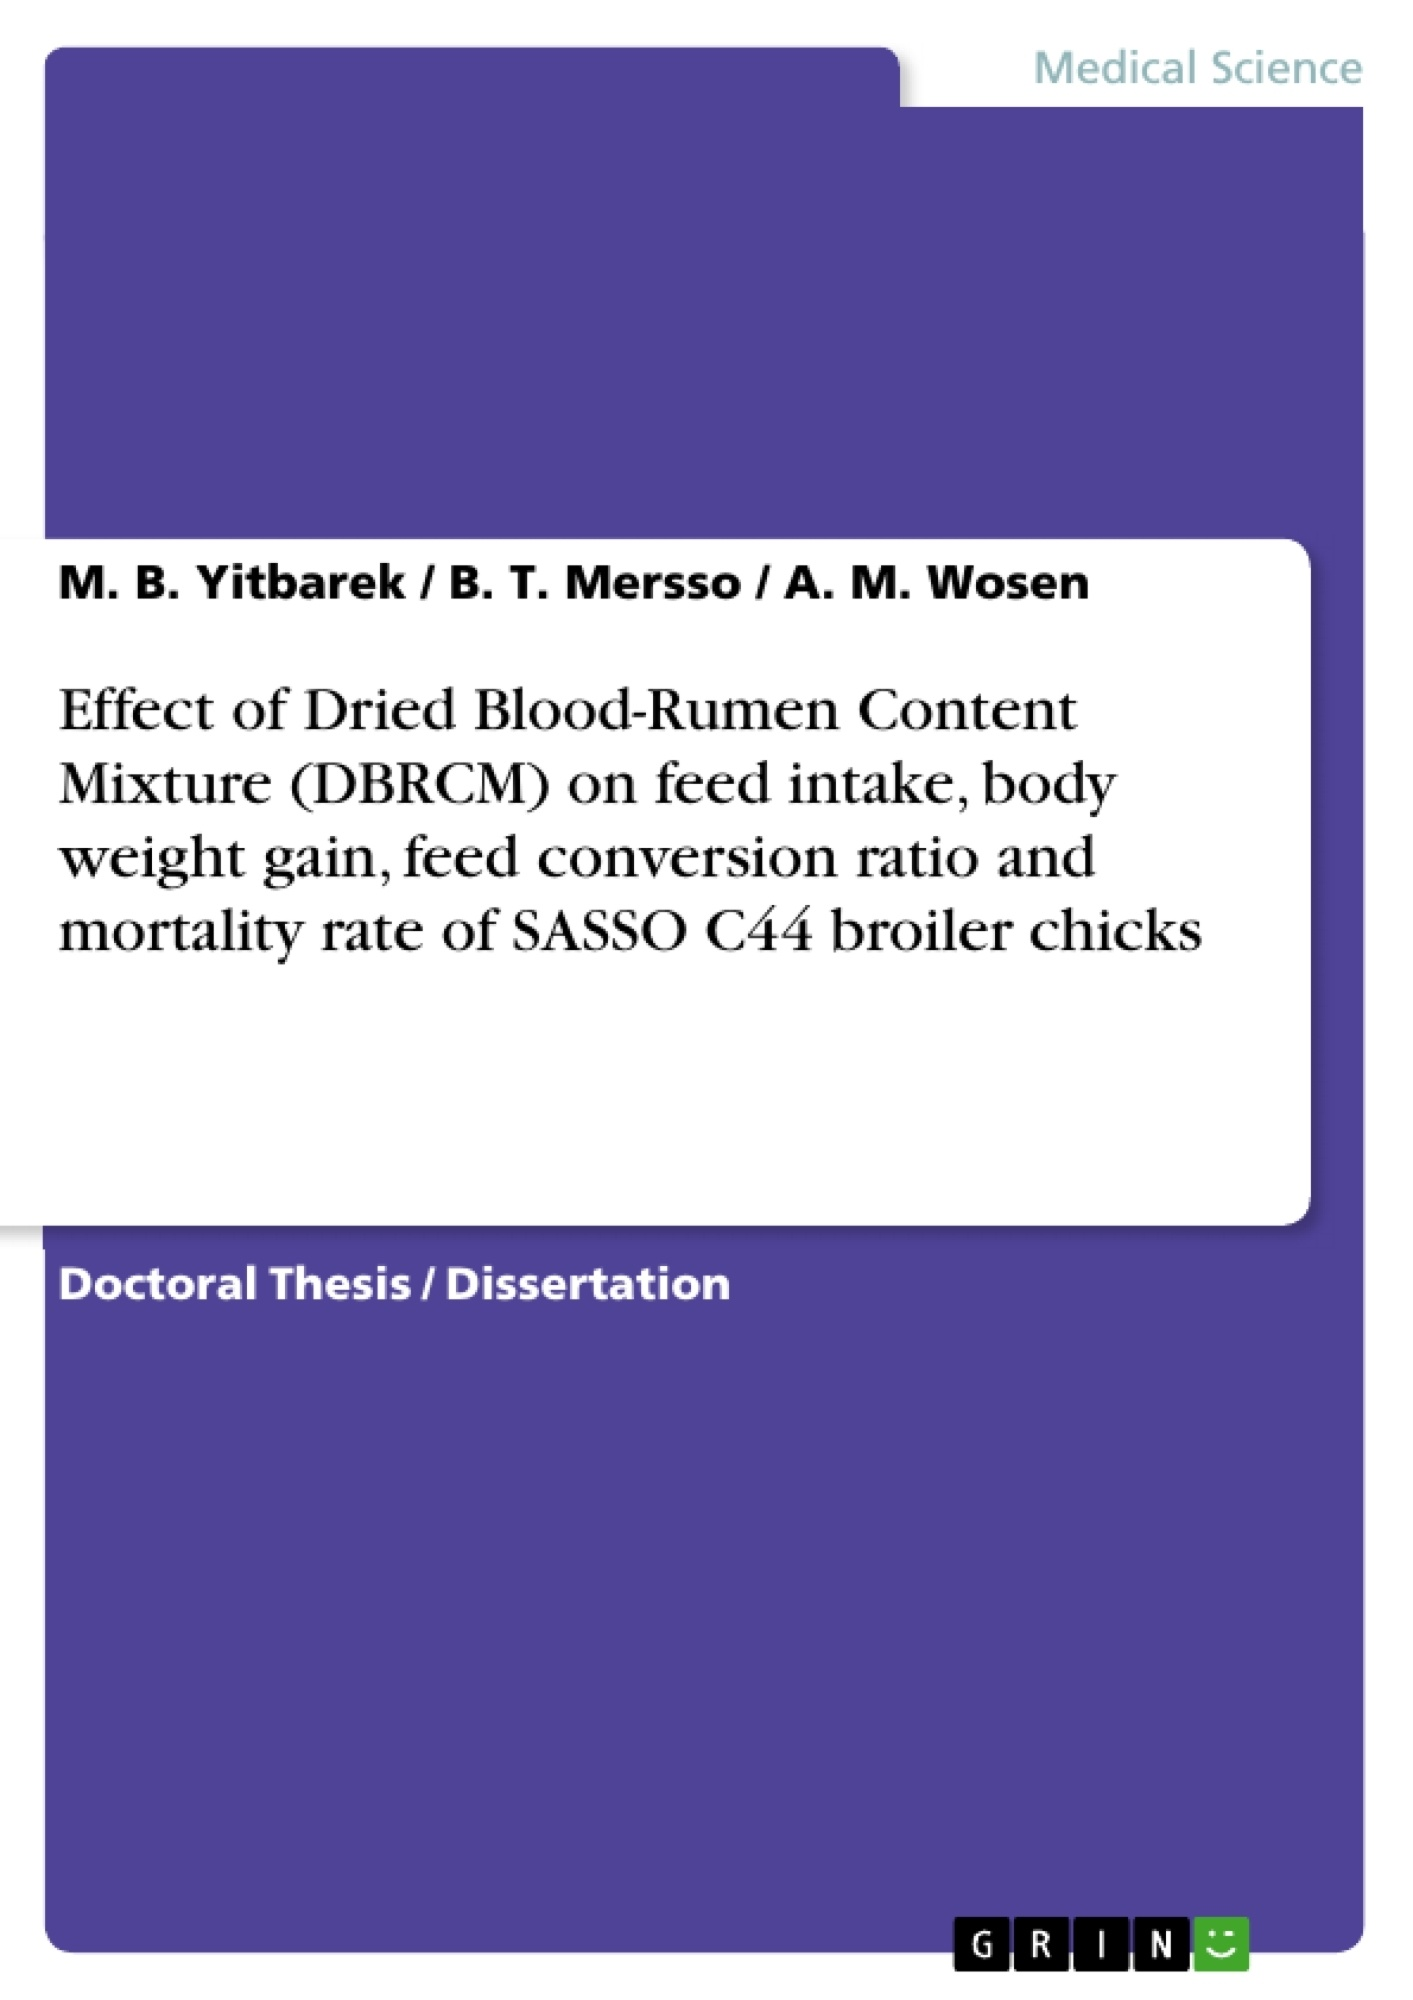 Title: Effect of Dried Blood-Rumen Content Mixture (DBRCM) on feed intake, body weight gain, feed conversion ratio and mortality rate of SASSO C44 broiler chicks